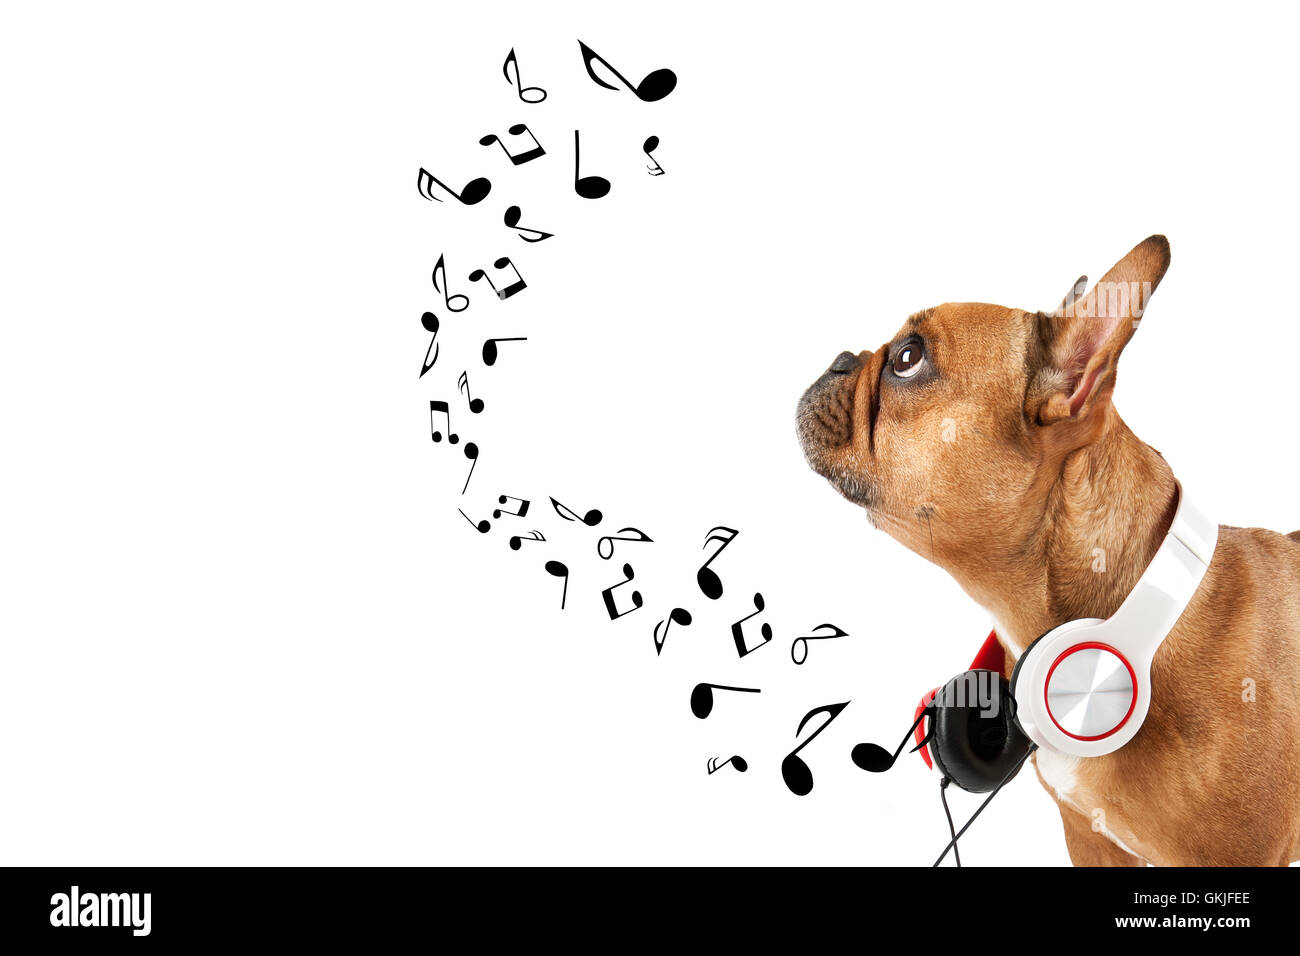 dog listens to music - Stock Image